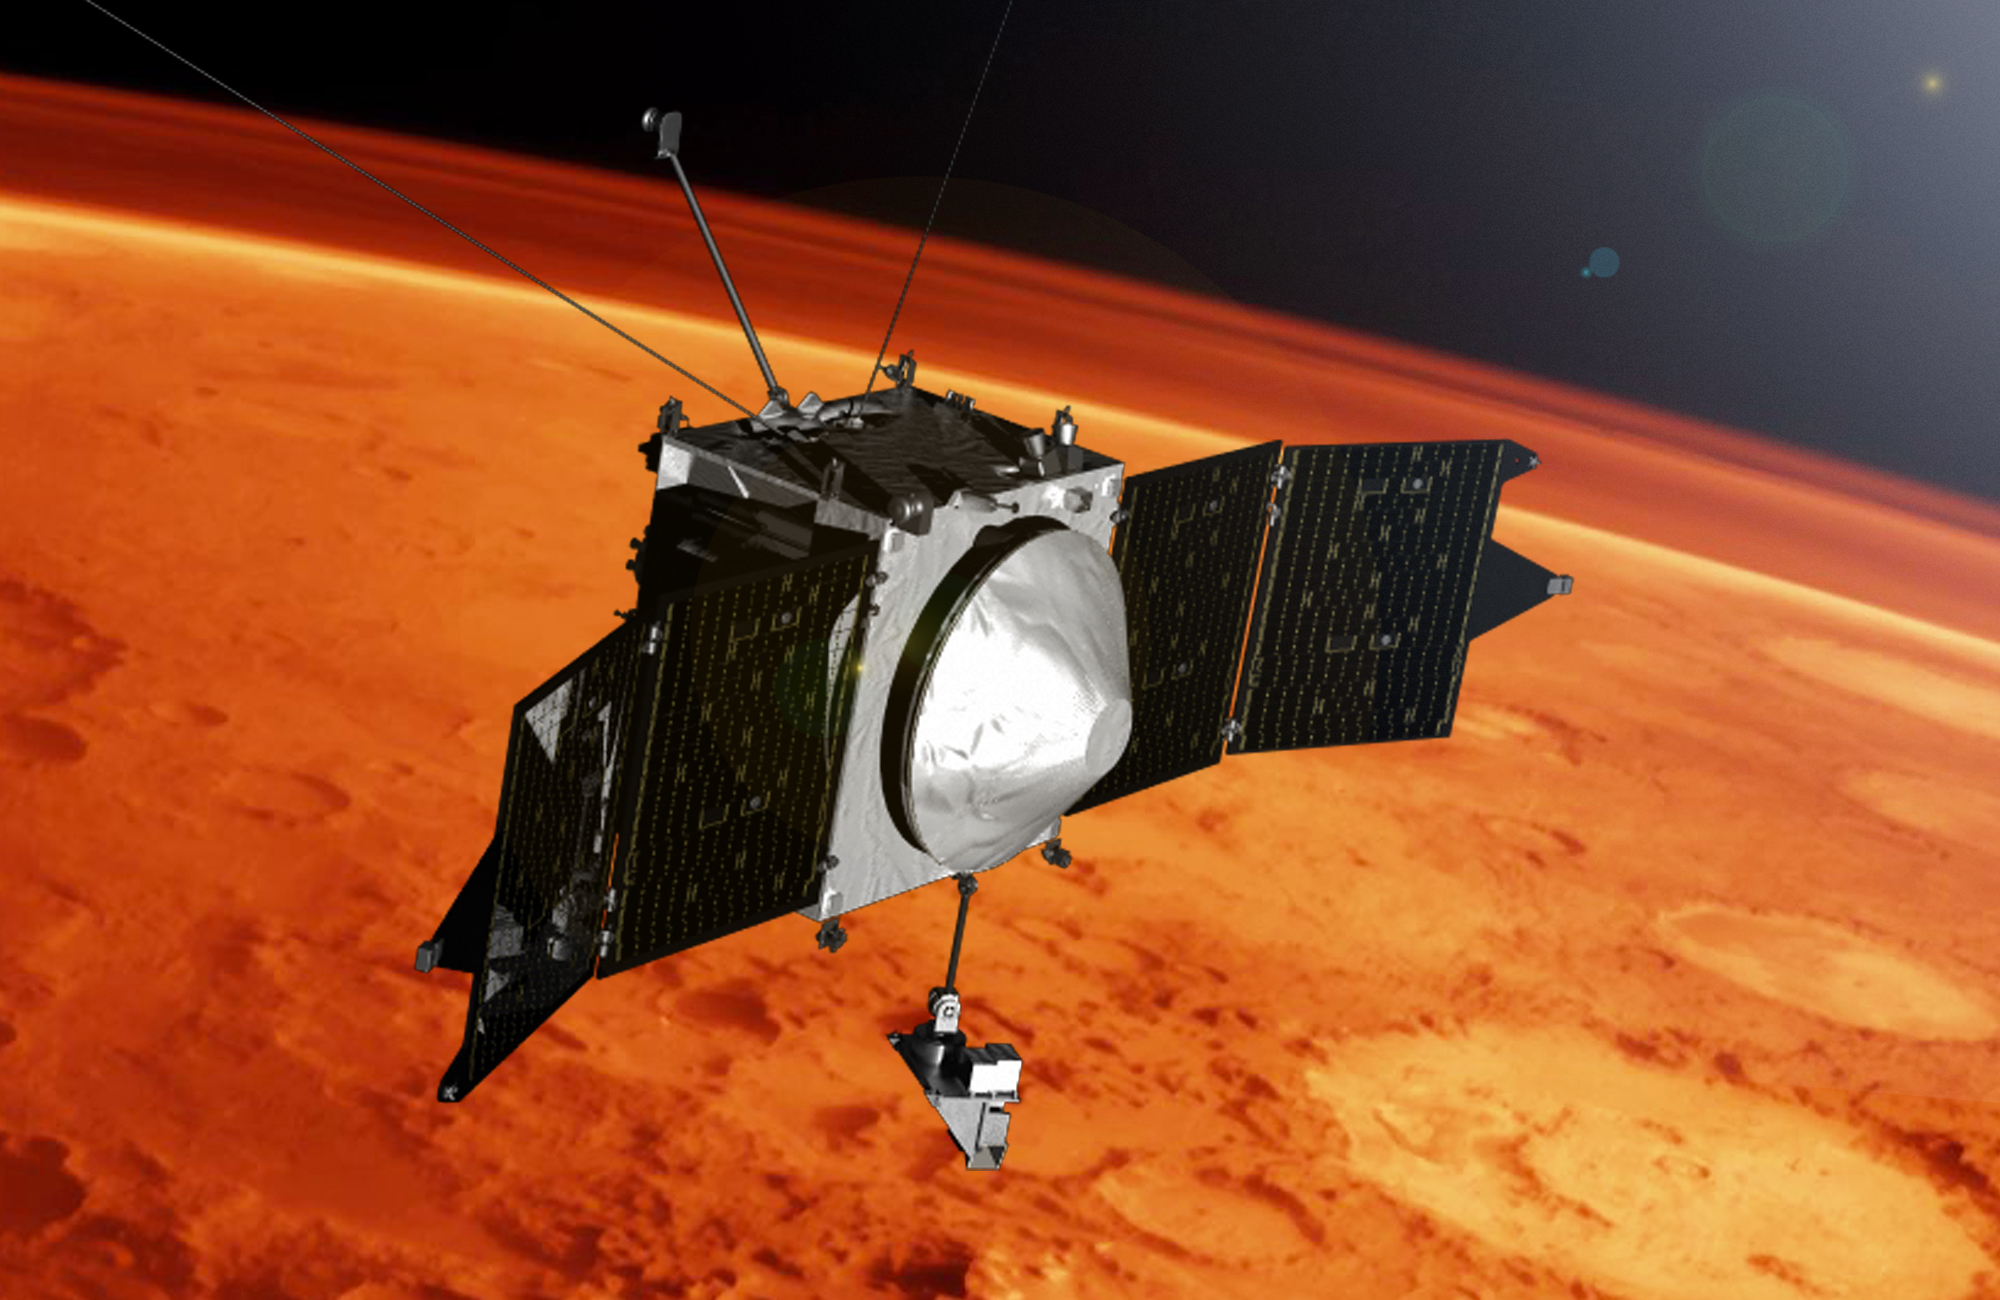 NASA's MAVEN mission is observing the upper atmosphere of Mars to help understand climate change on the planet. MAVEN entered its science phase on Nov. 16, 2014.